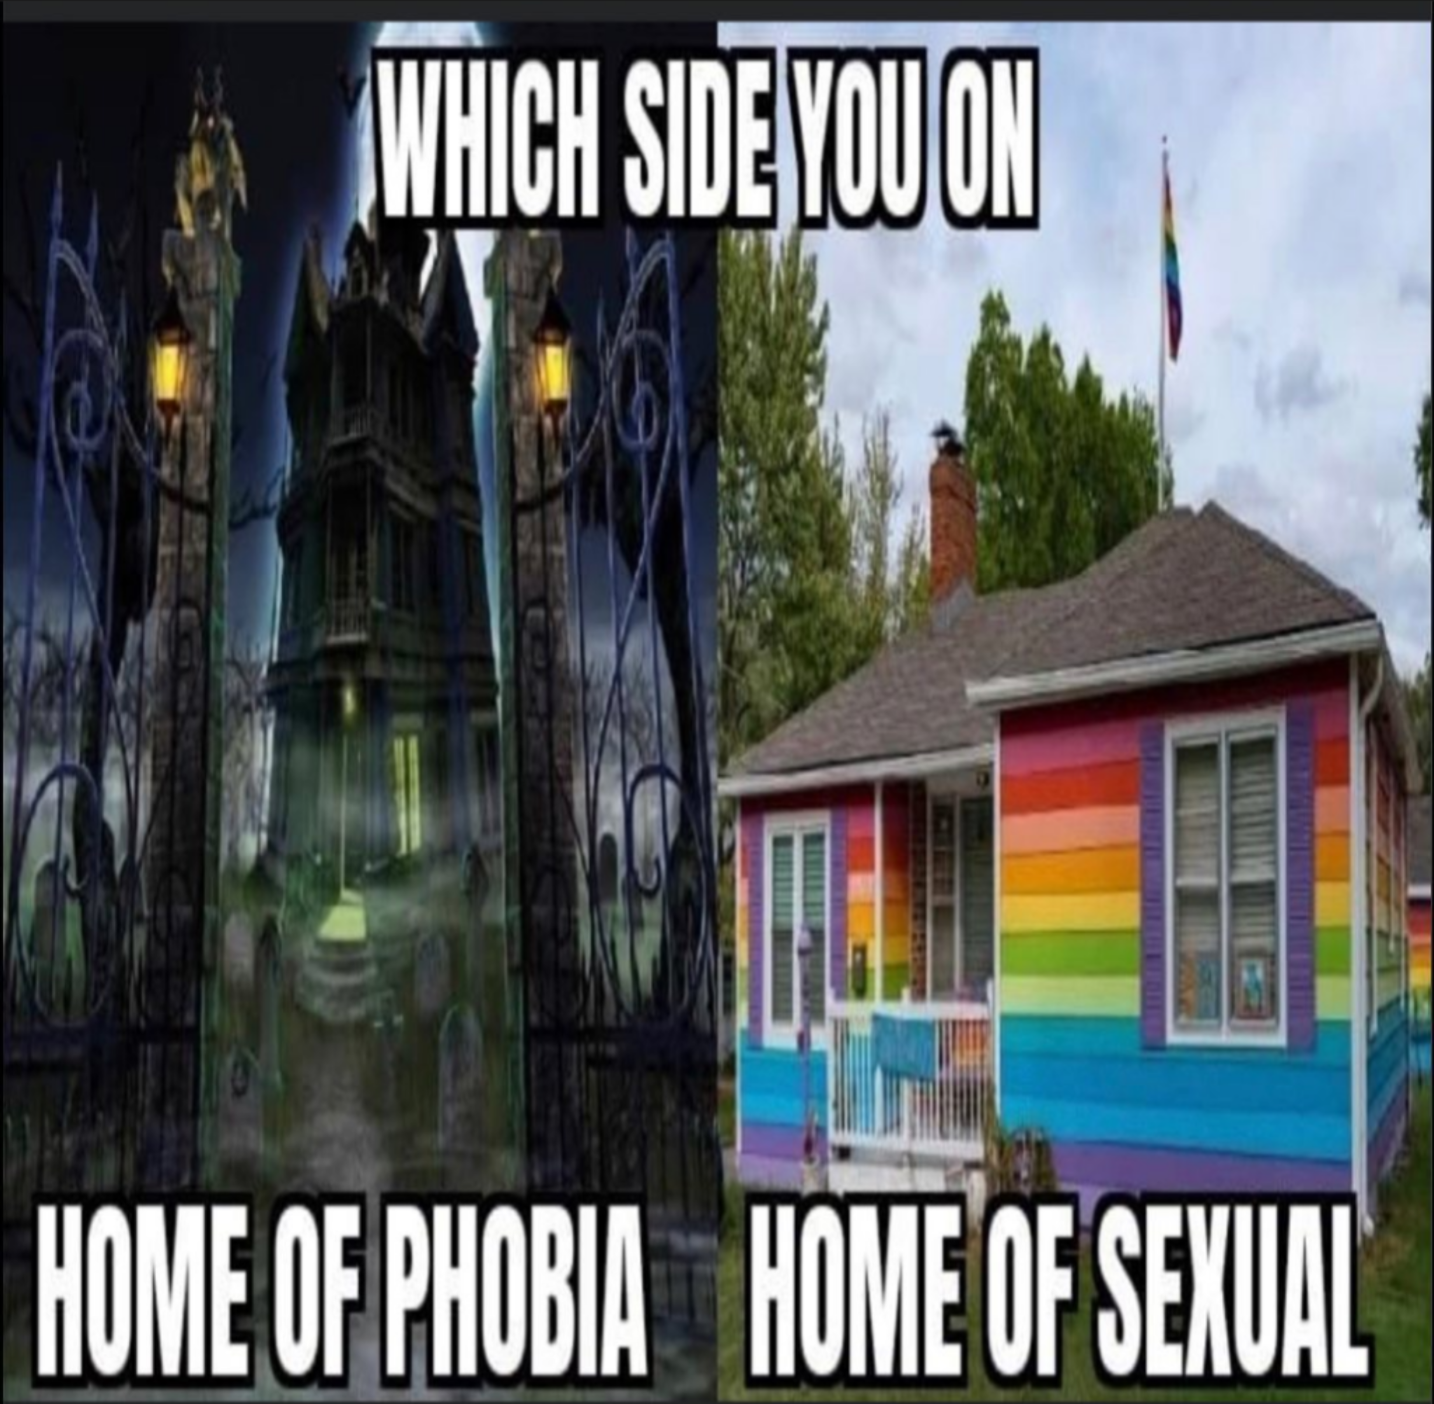 You have to choose